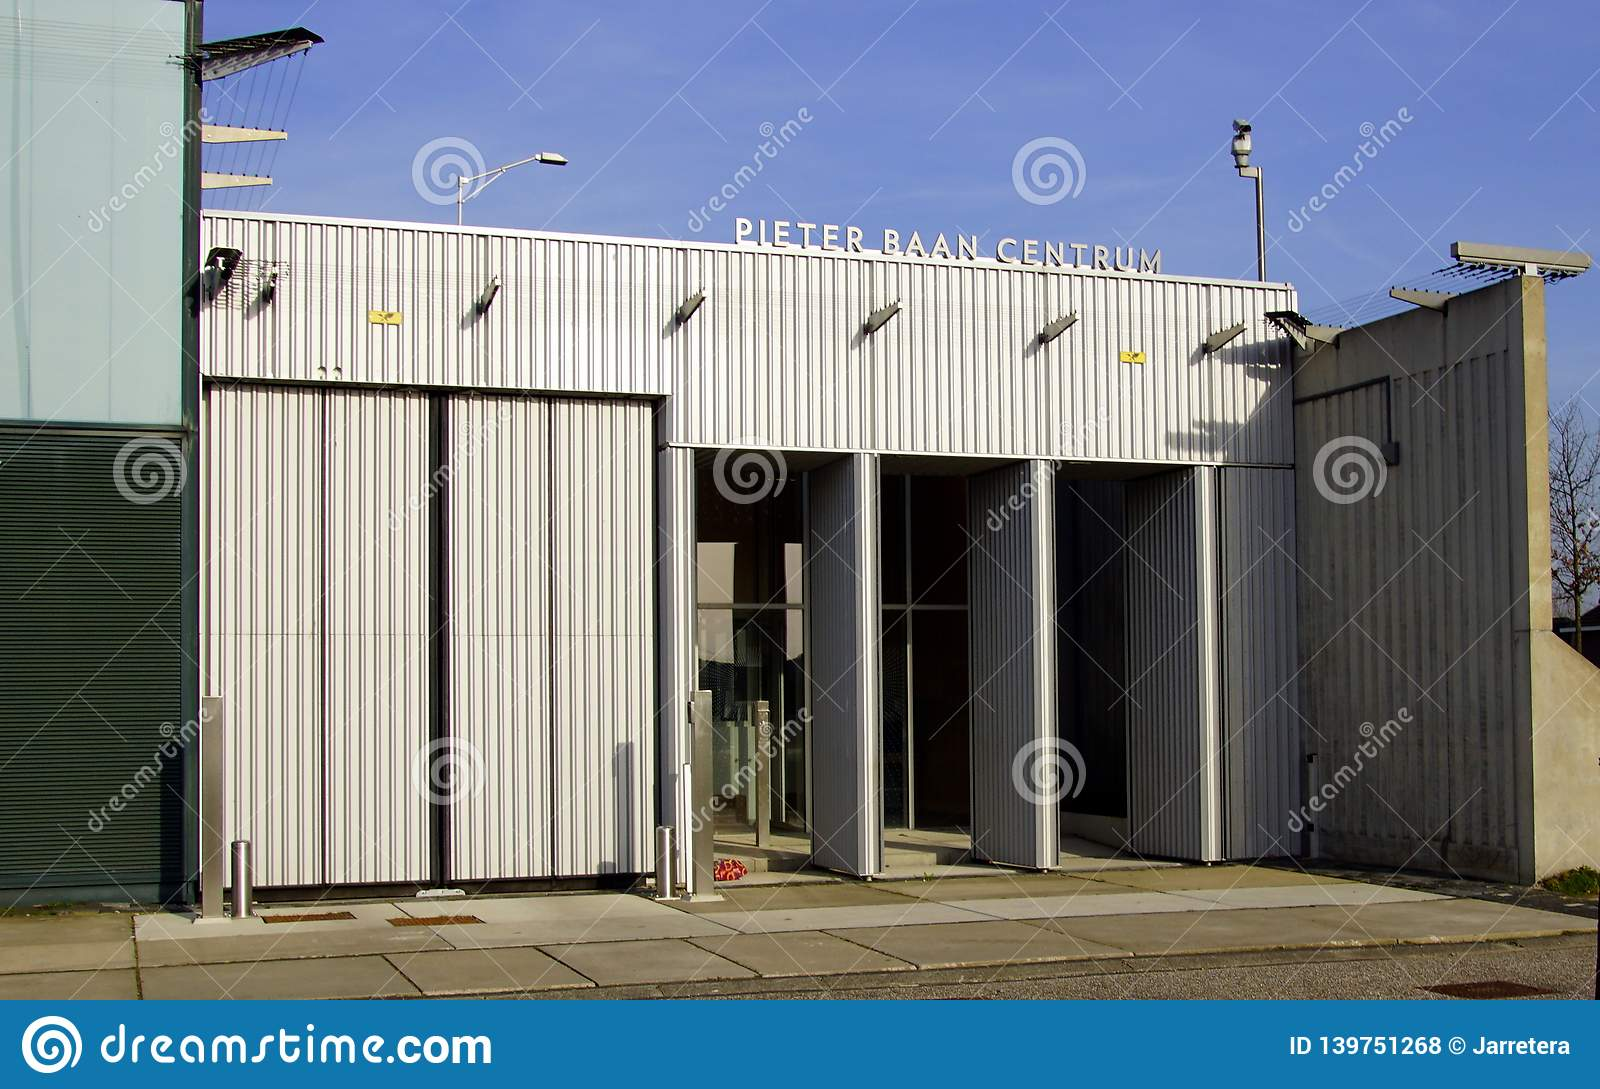 Entrance Of The Dutch Forensic Psychiatric Observation Clinic Pieter Baan Centre Almere Editorial Stock Photo Image Of Almere Illustrative 139751268